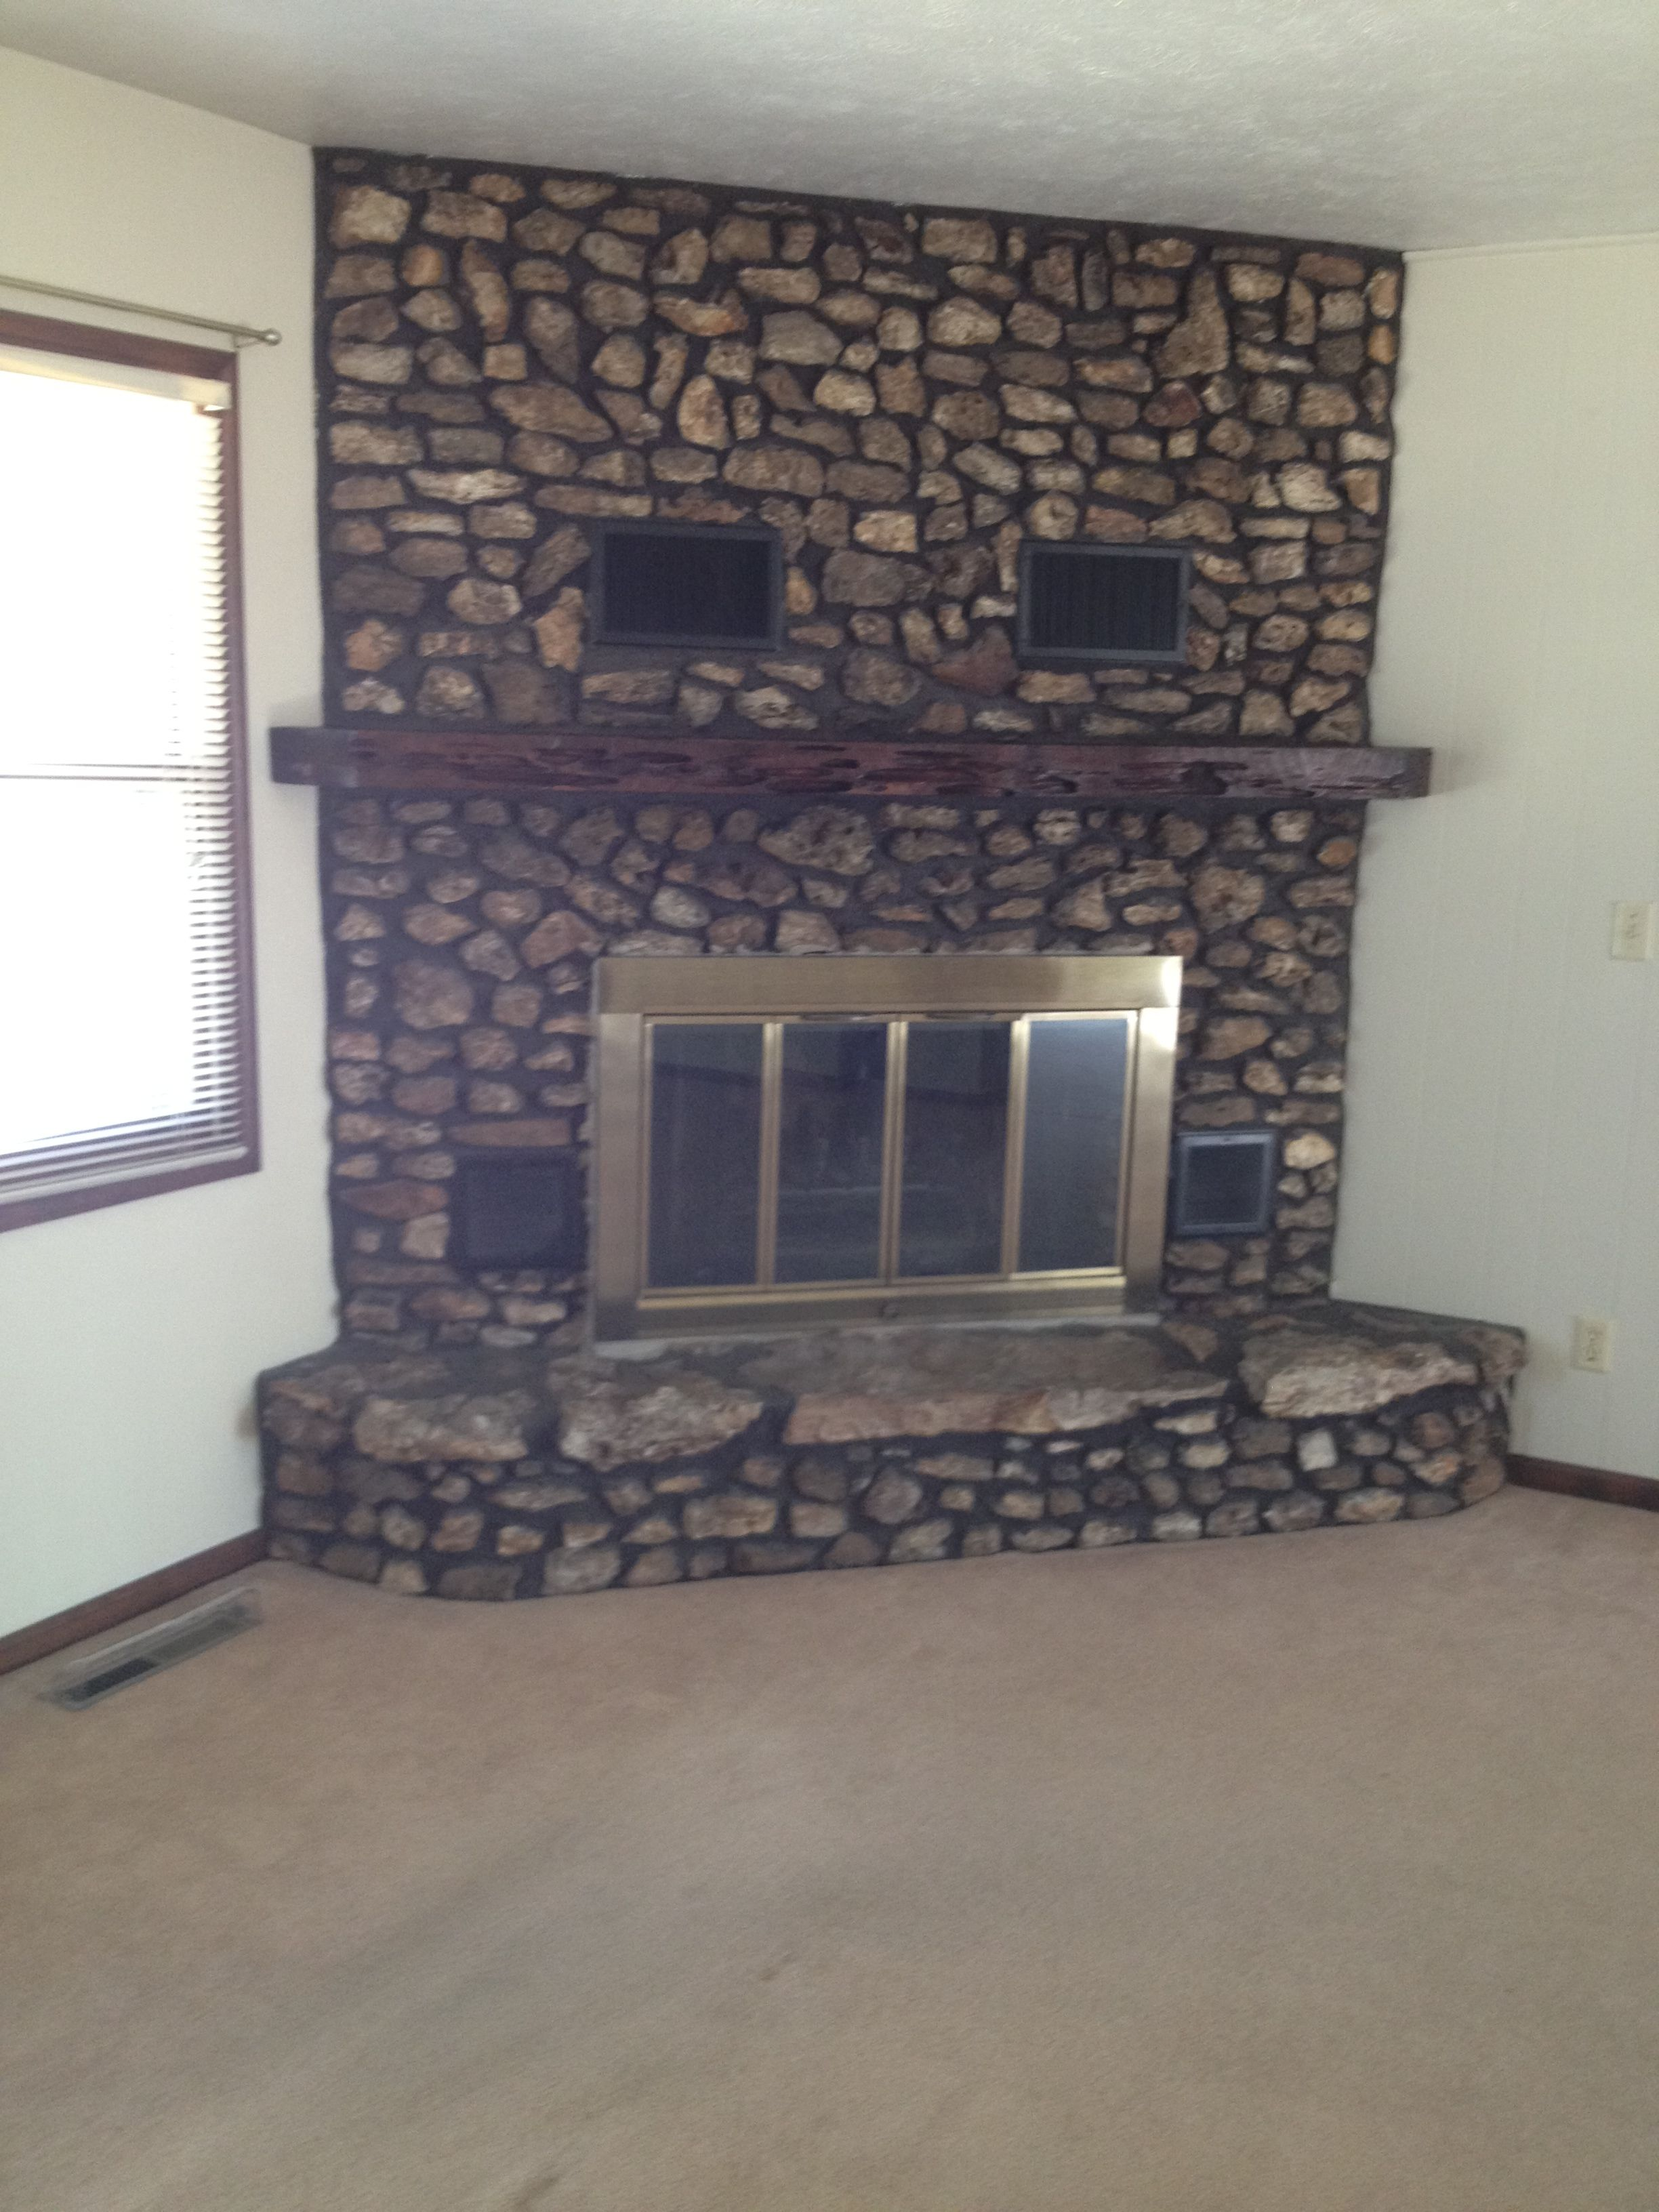 River rock fireplace pictures - Rock Fireplace Thousands Ideas For Interior And Decorating Home